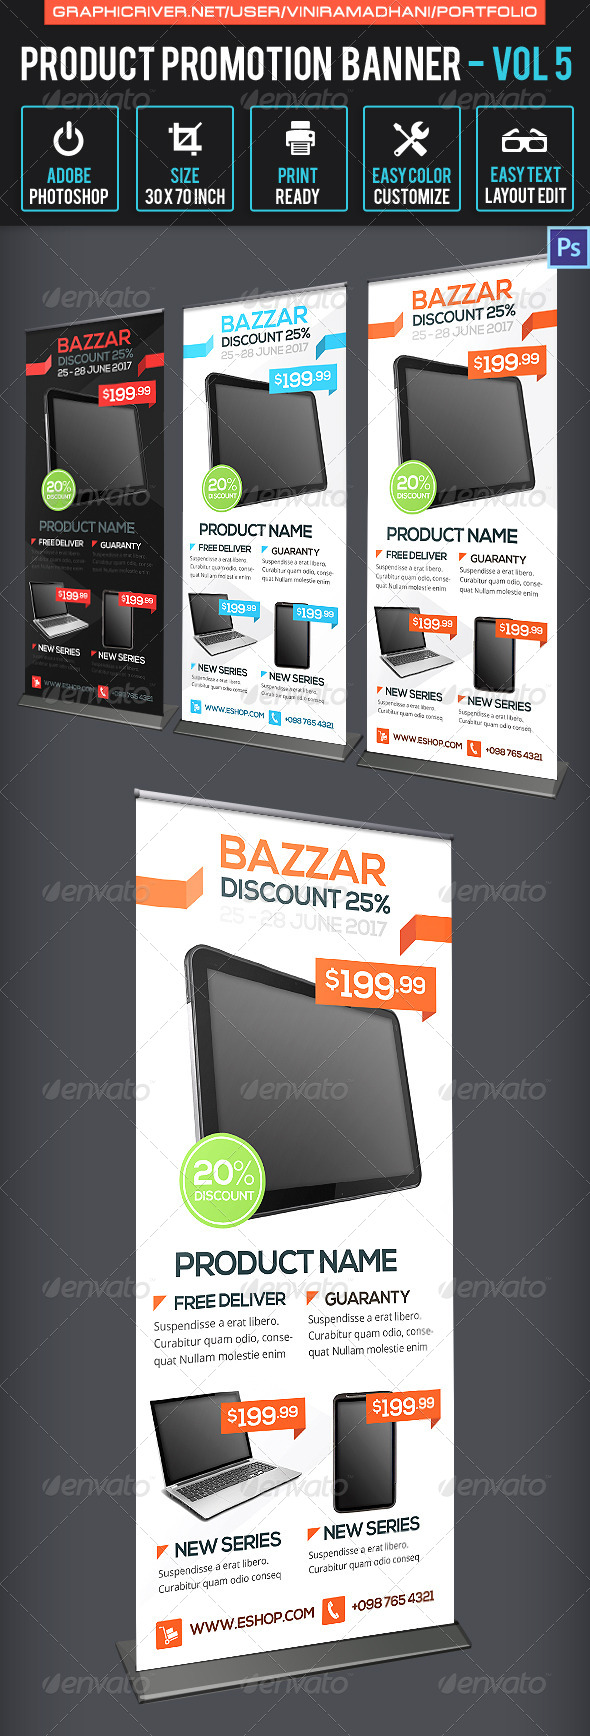 Product Promotion Banner Volume 5